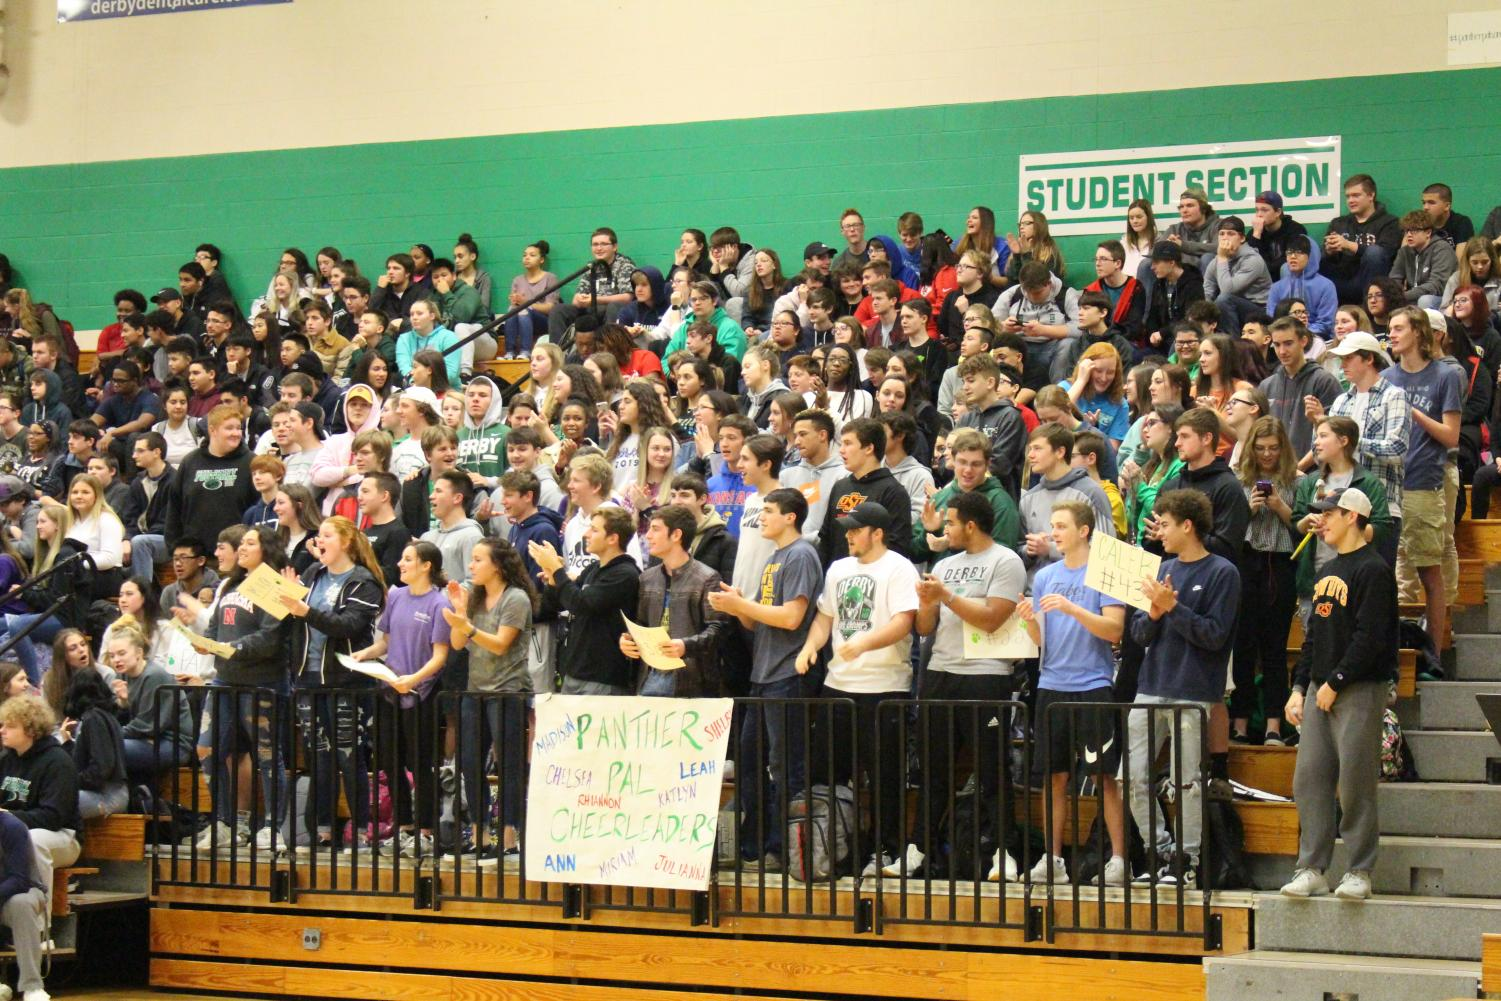 The+student+section+cheers+for+the+Panther+Pal%27s+basketball+team+as+they+play+against+Maize